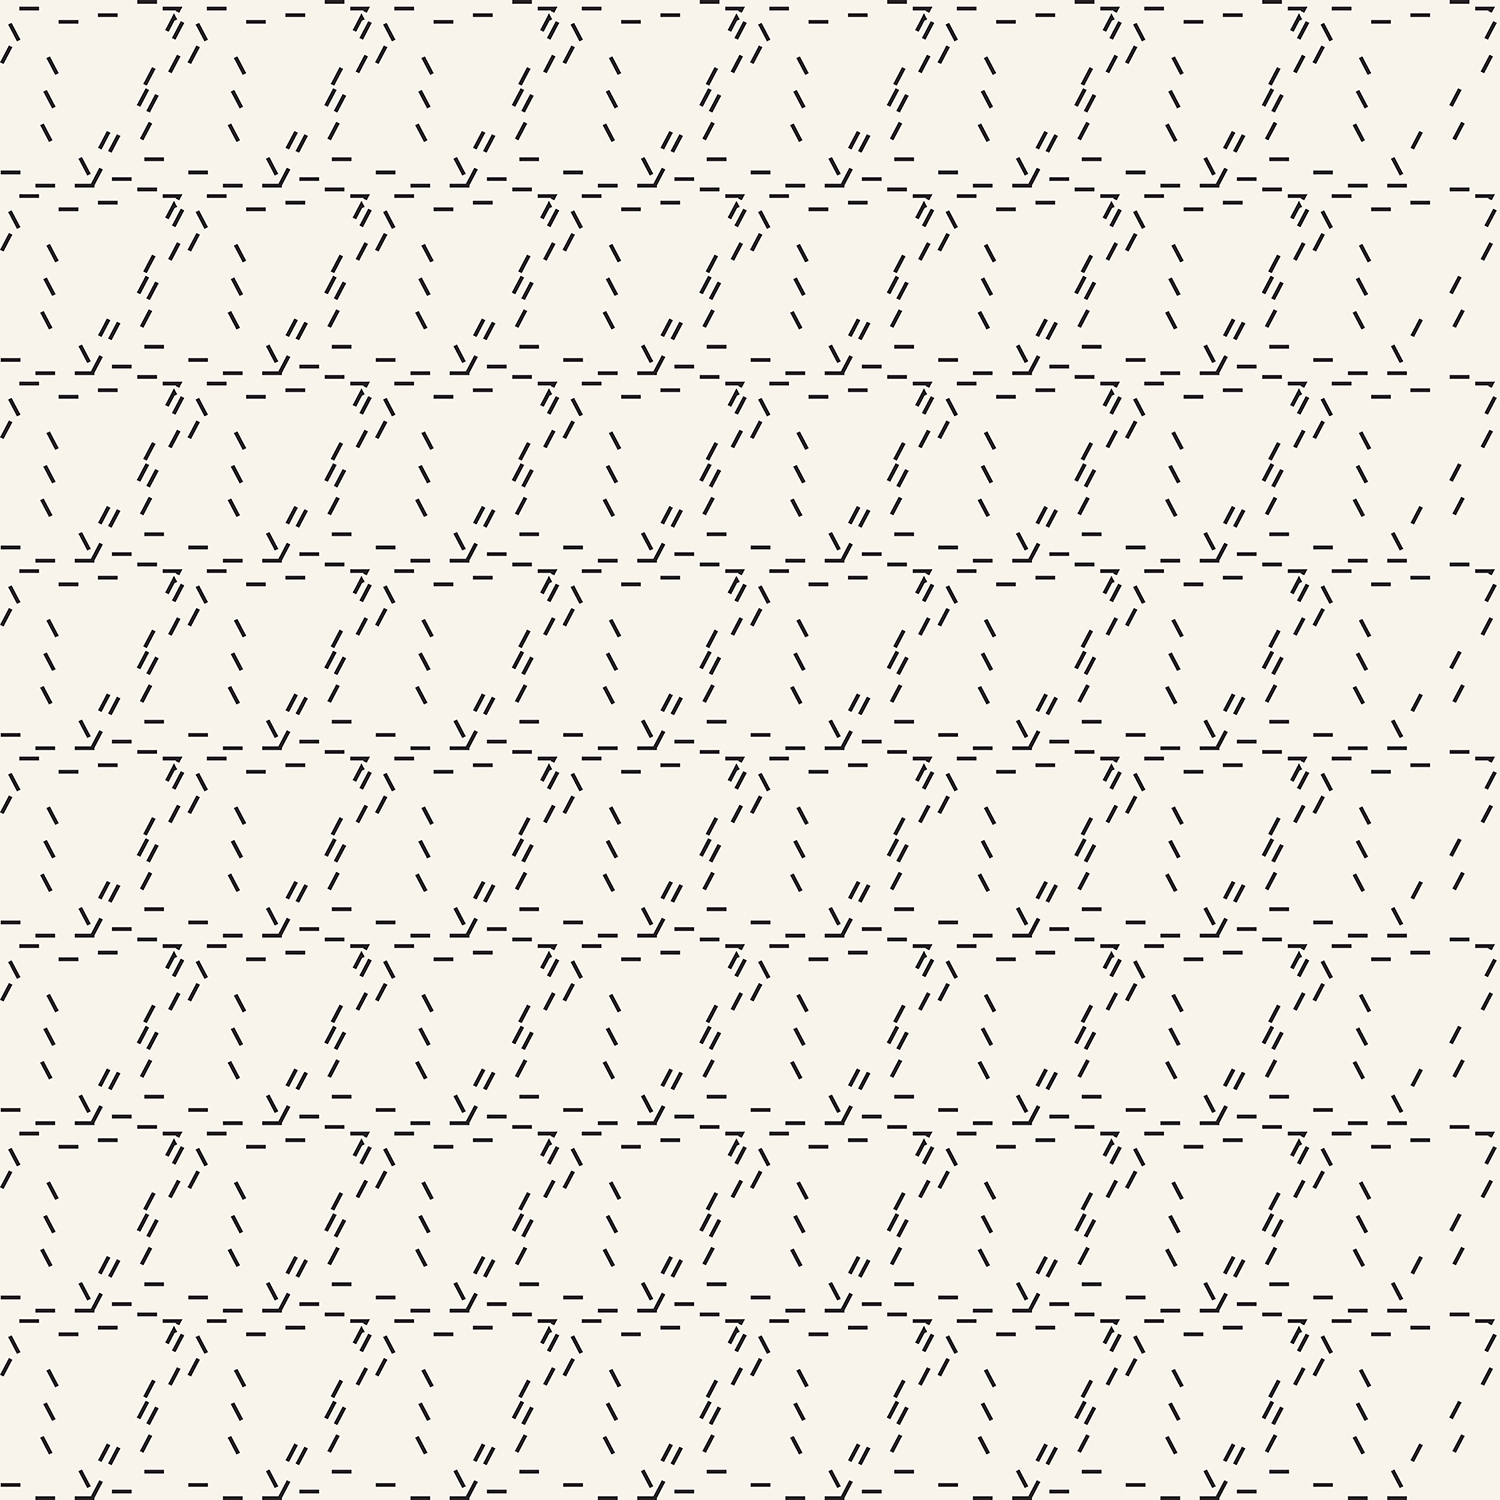 Diamond Dash Patterns example image 6